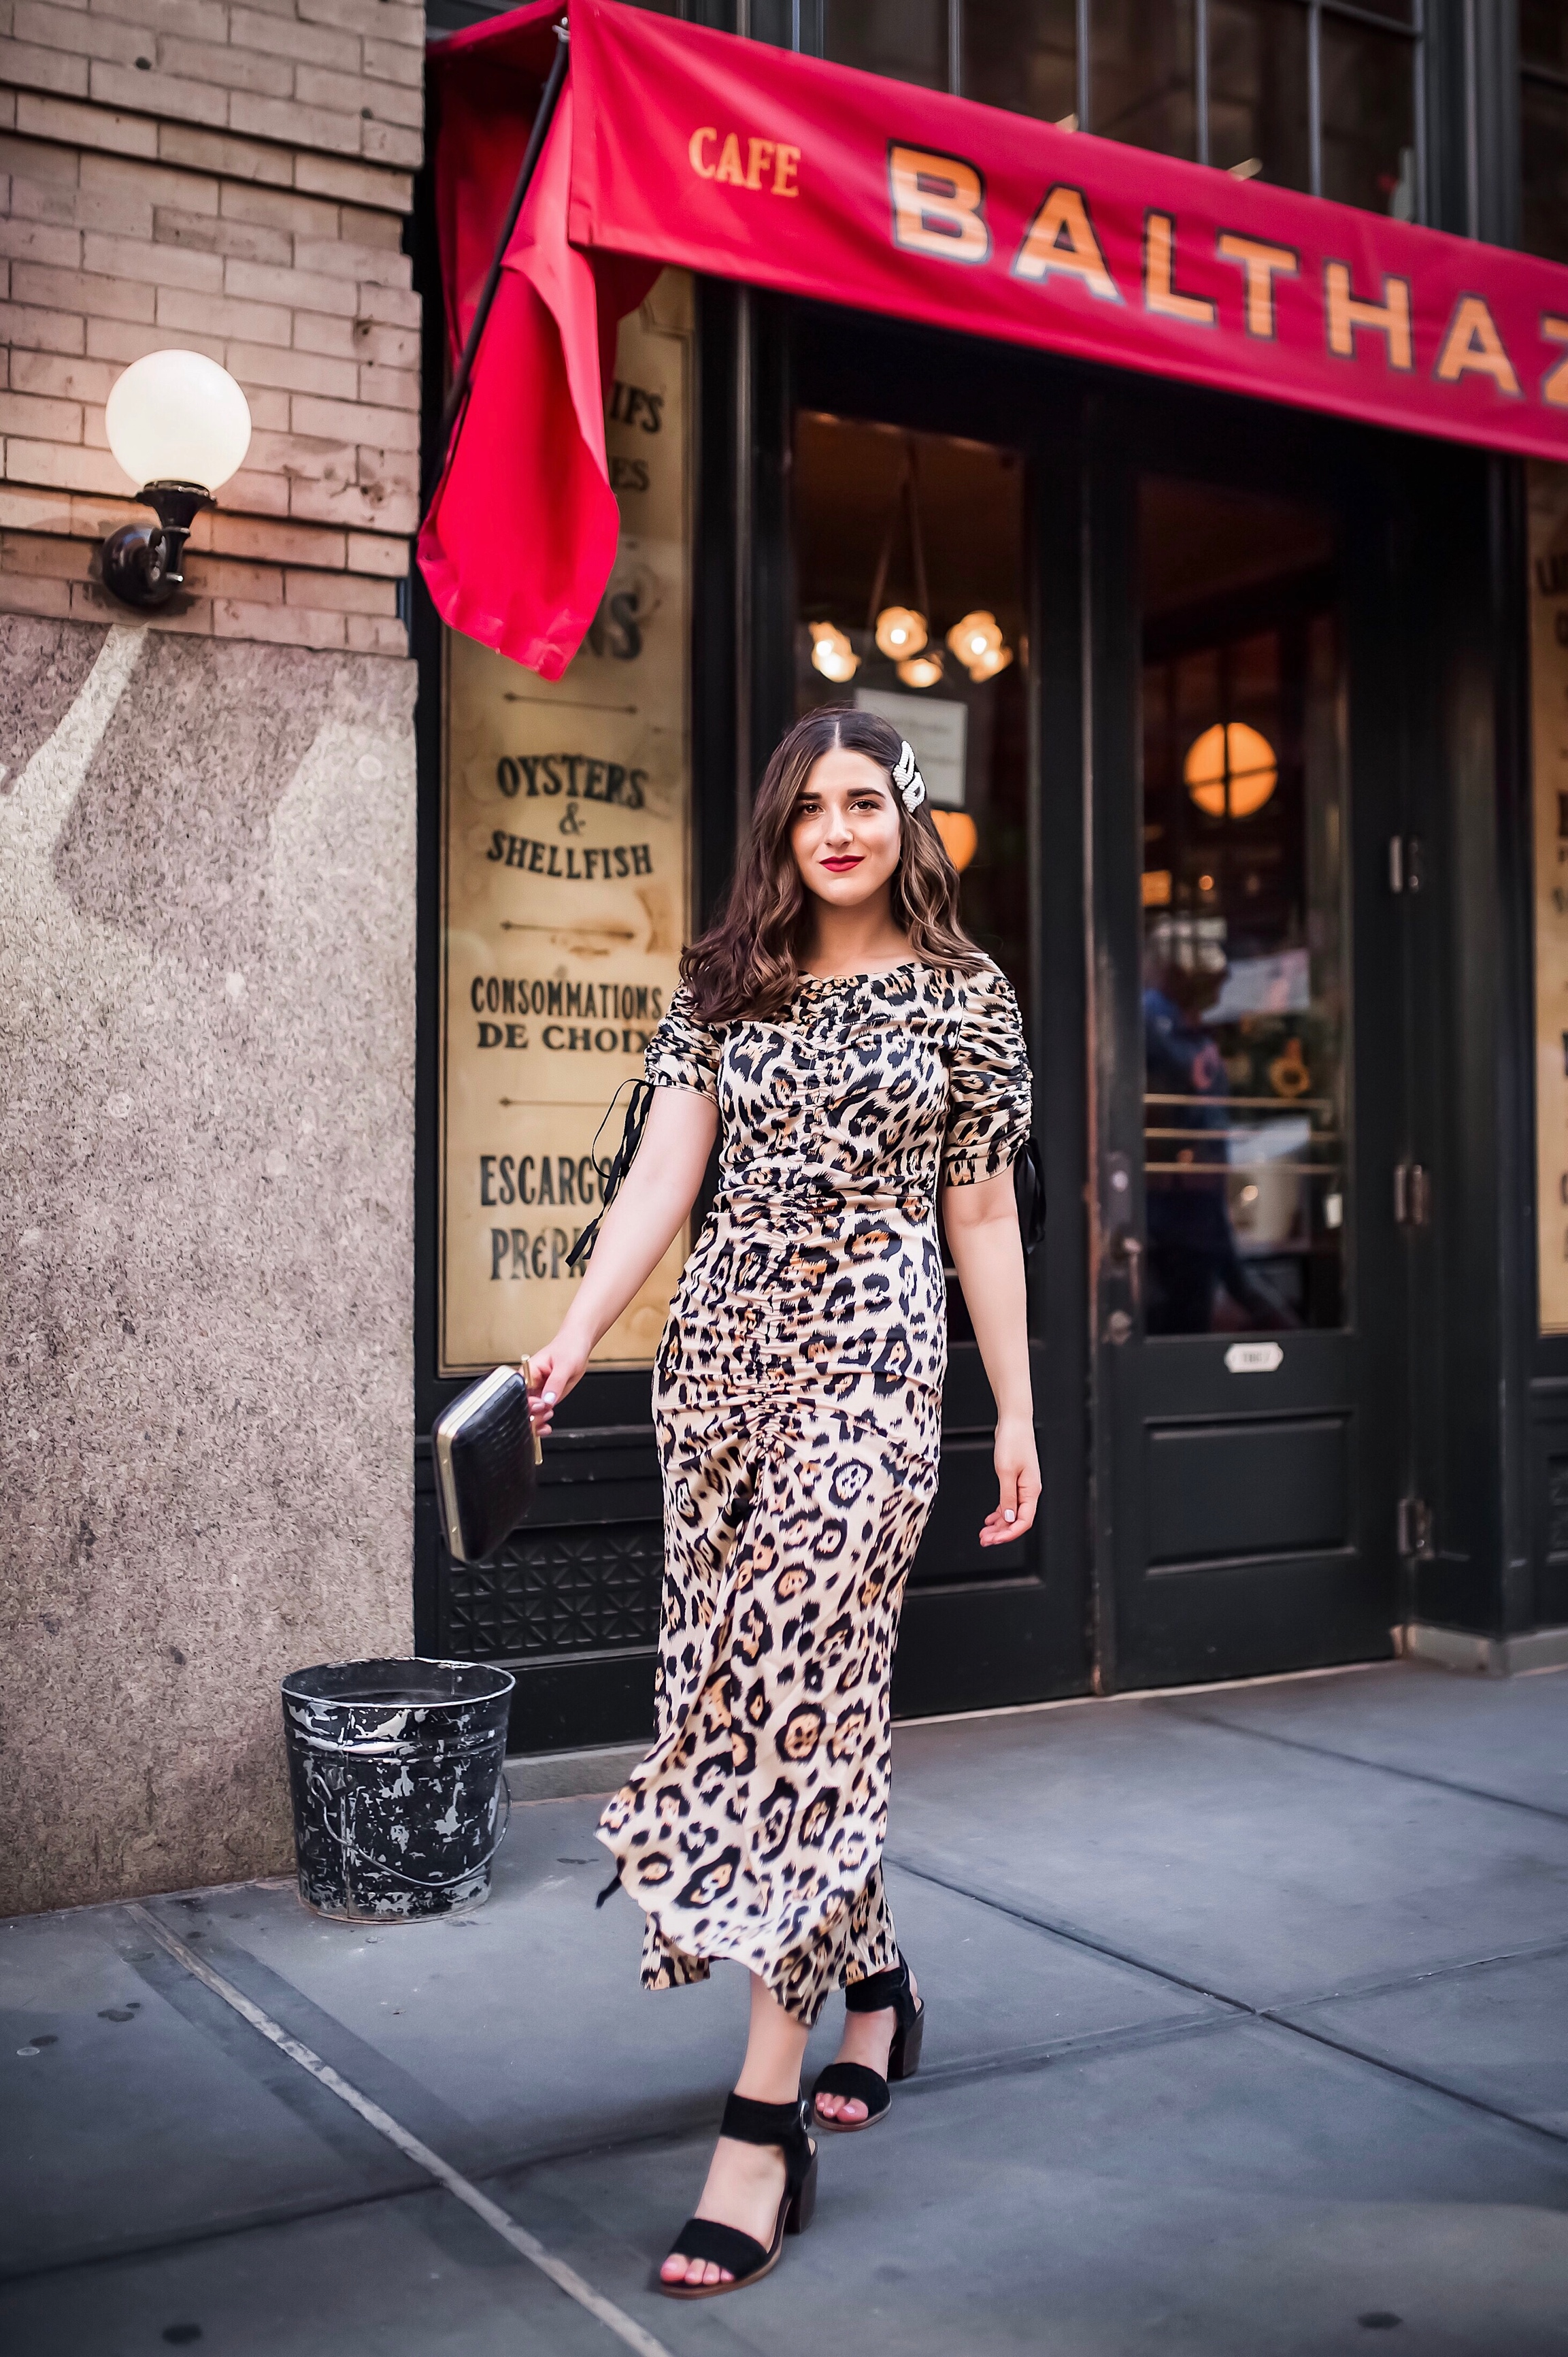 July 3 2019 Leopard Dress Pearl Hair Clips Esther Santer Fashion Blog NYC Street Style Blogger Outfit OOTD Trendy Shopping Girl What How To Wear Cheetah Black Braided Sandals Vince Camuto Balthazar Restaurant Bag New York City Soho Photoshoot Clothing.jpg